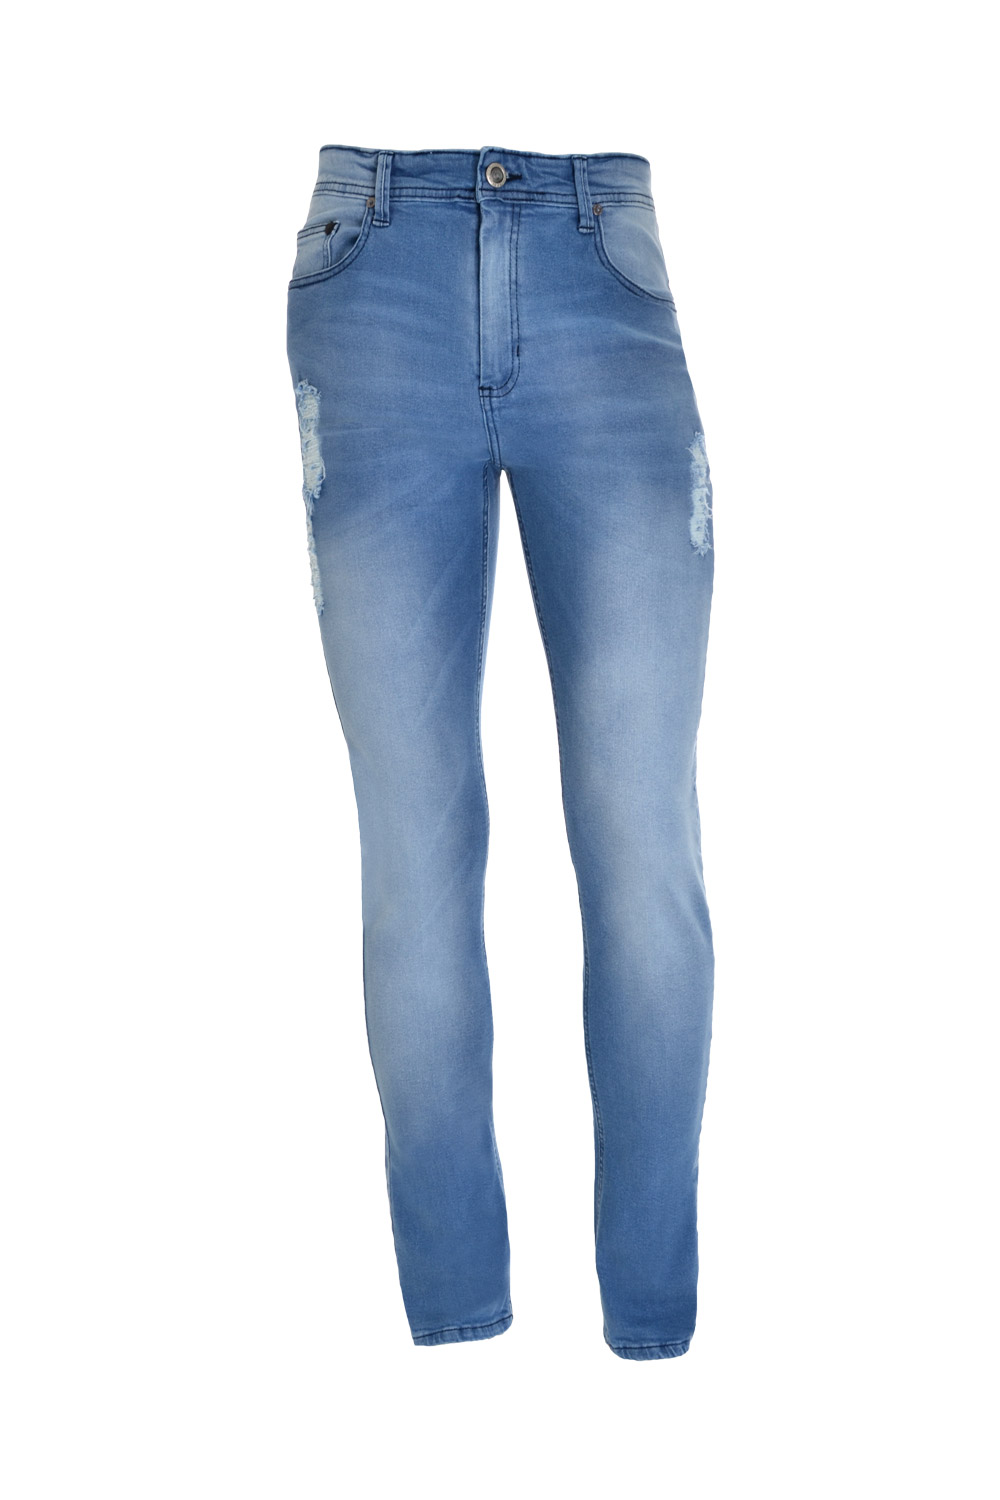 CALÇA JEANS BLUES SLIM POLIALGODAO & ELASTANO STRETCH STONED DELAVE